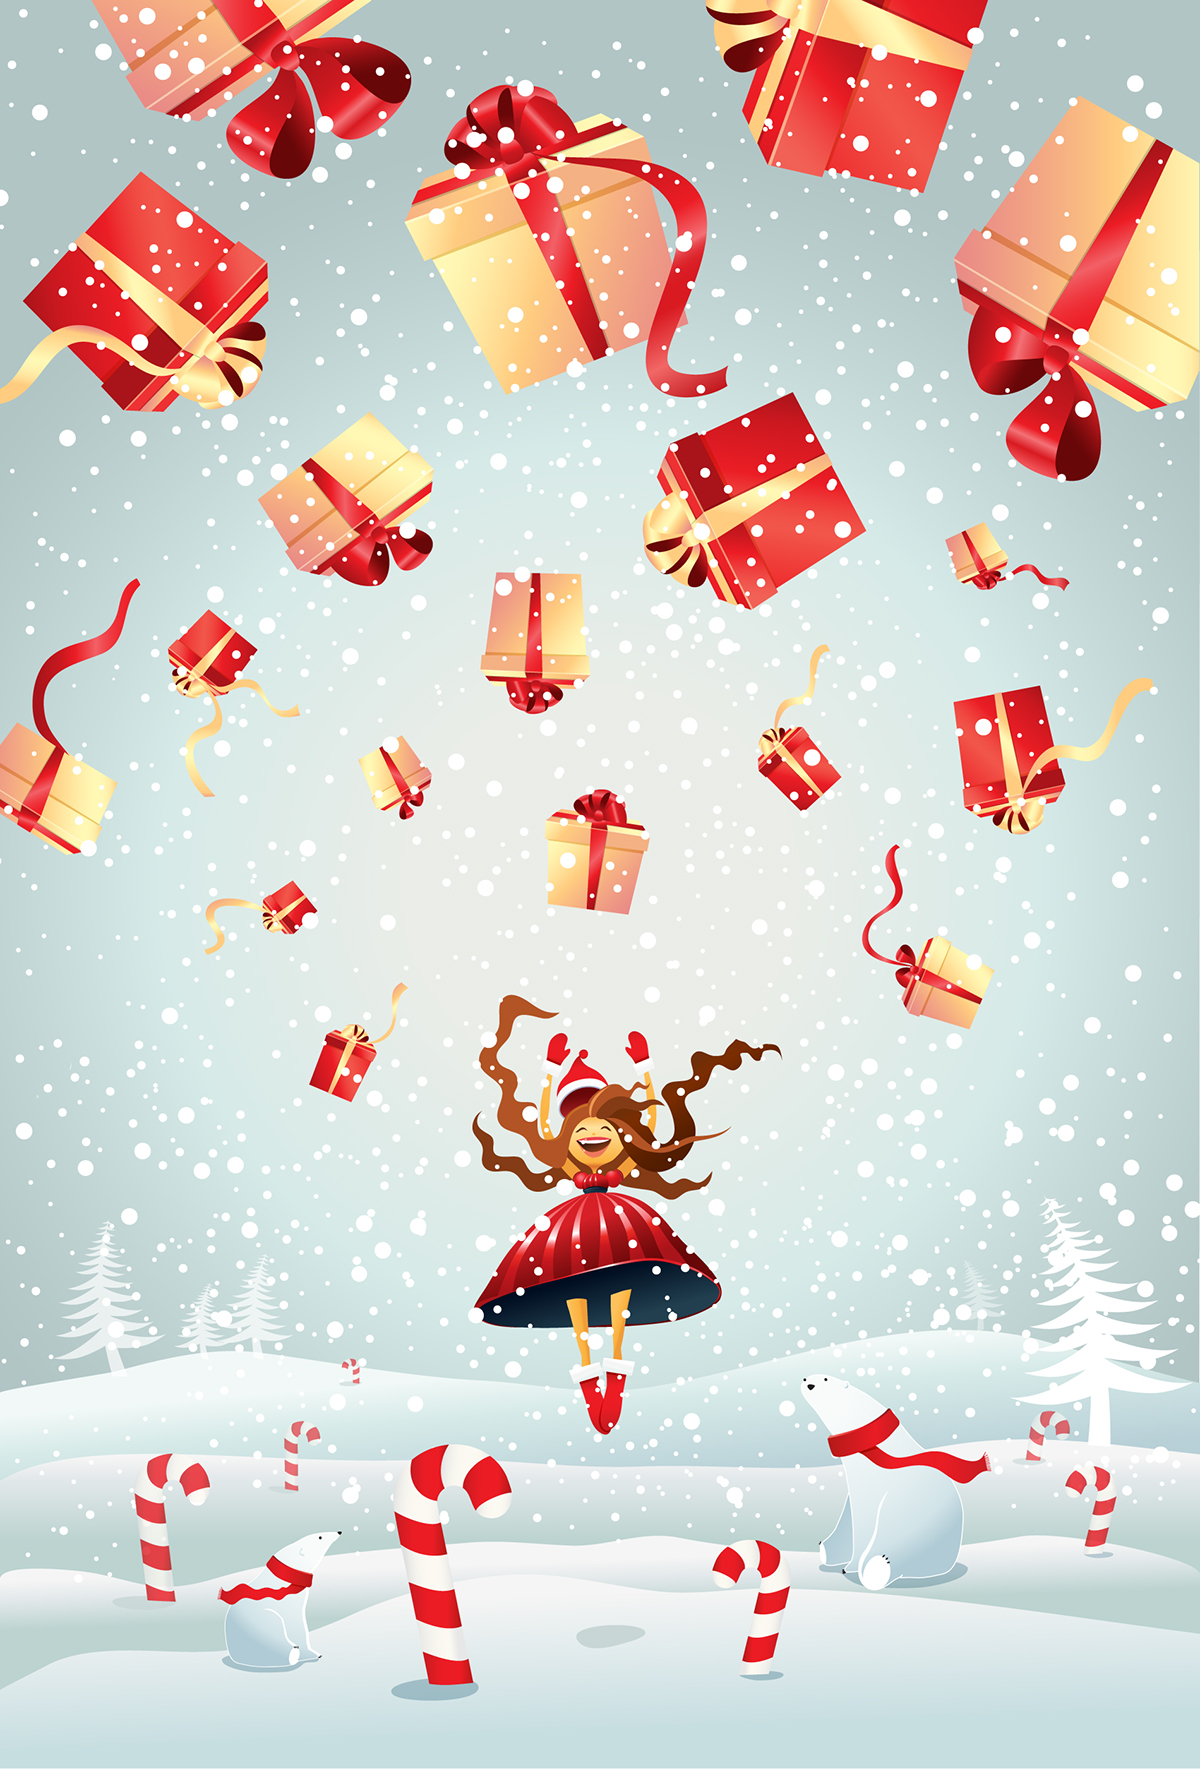 Christmas Illustrations.Christmas Illustrations On Behance